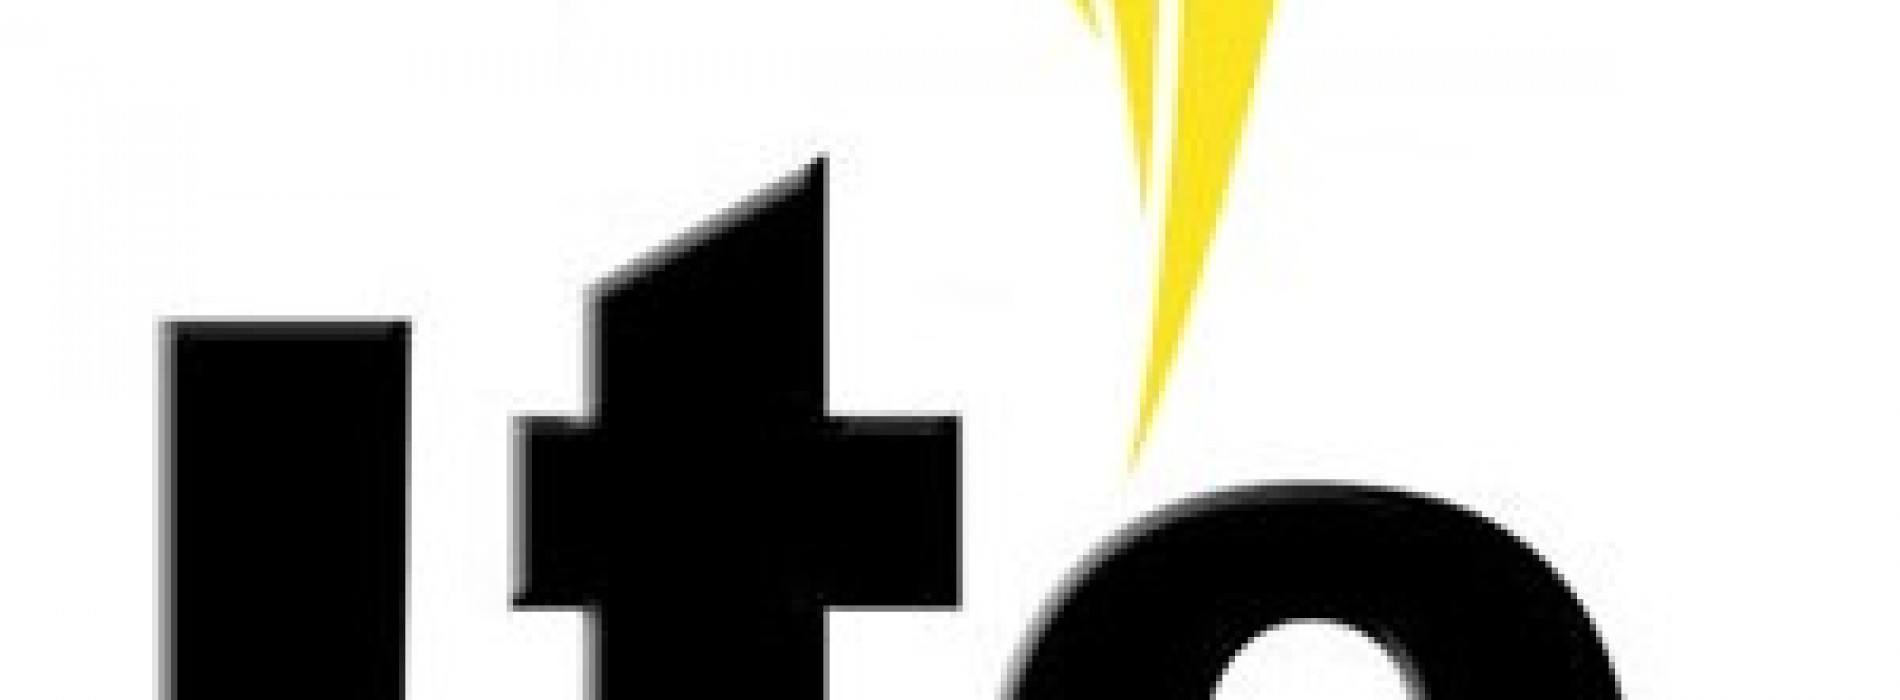 Sprint announces which lucky users are to get 4G LTE in 2012